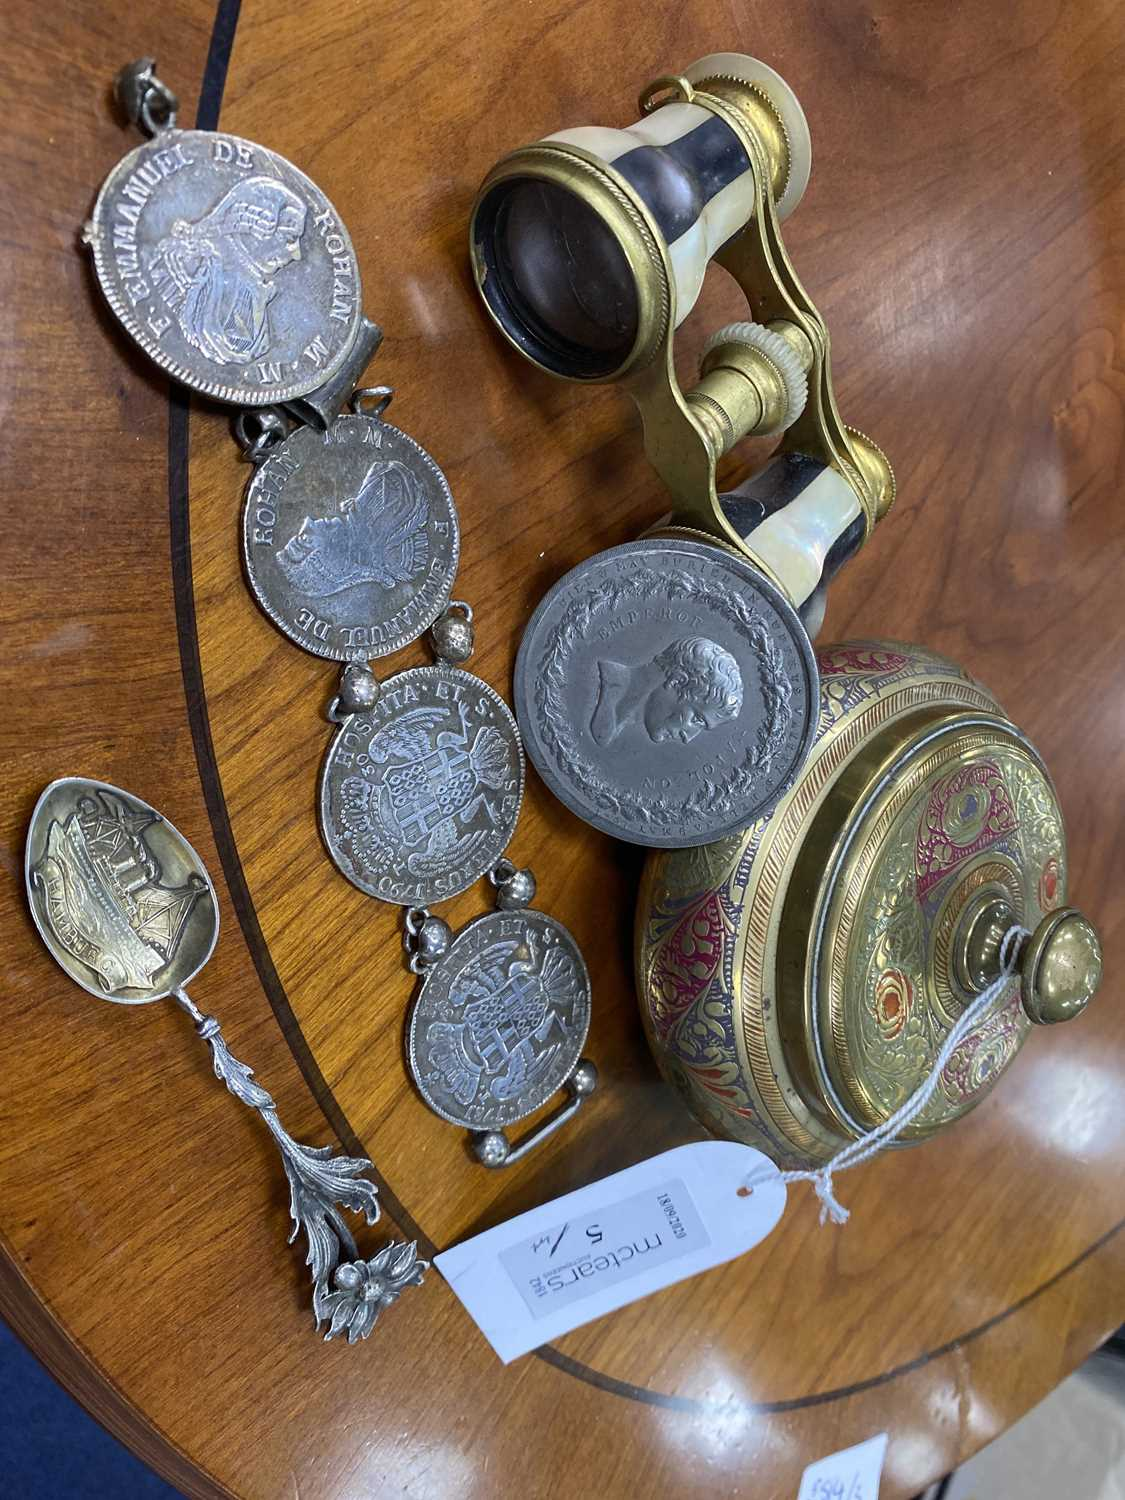 Lot 5-AN EMPEROR NAPOLEON COMMEMORATIVE MEDAL ALONG WITH A BRACELET AND SNUFF BOXES